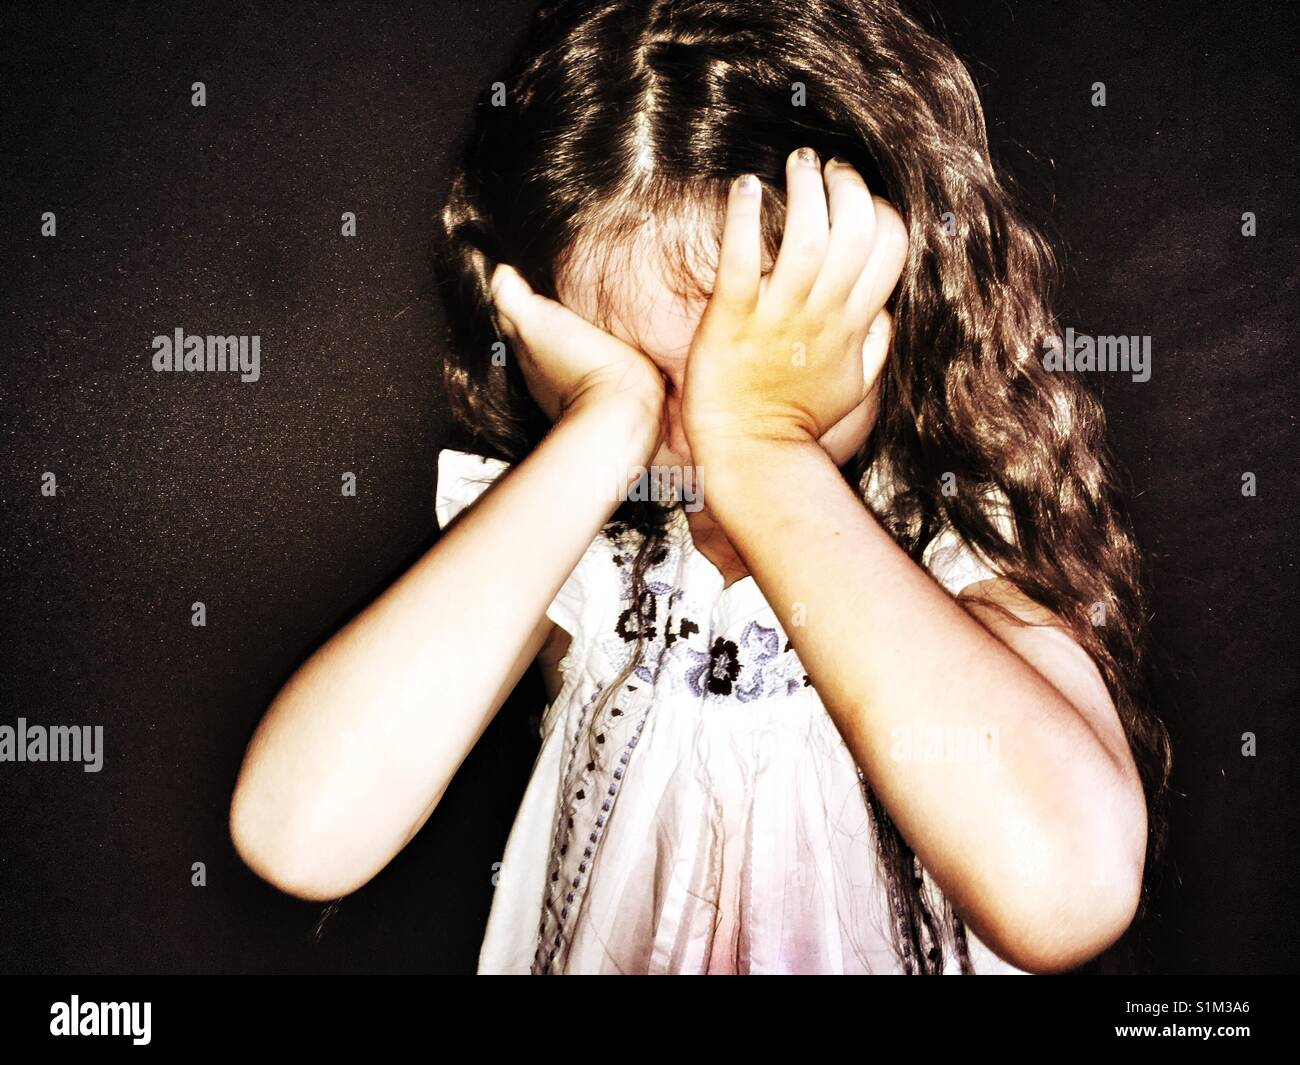 Upset child wiping tears away from her eyes - Stock Image